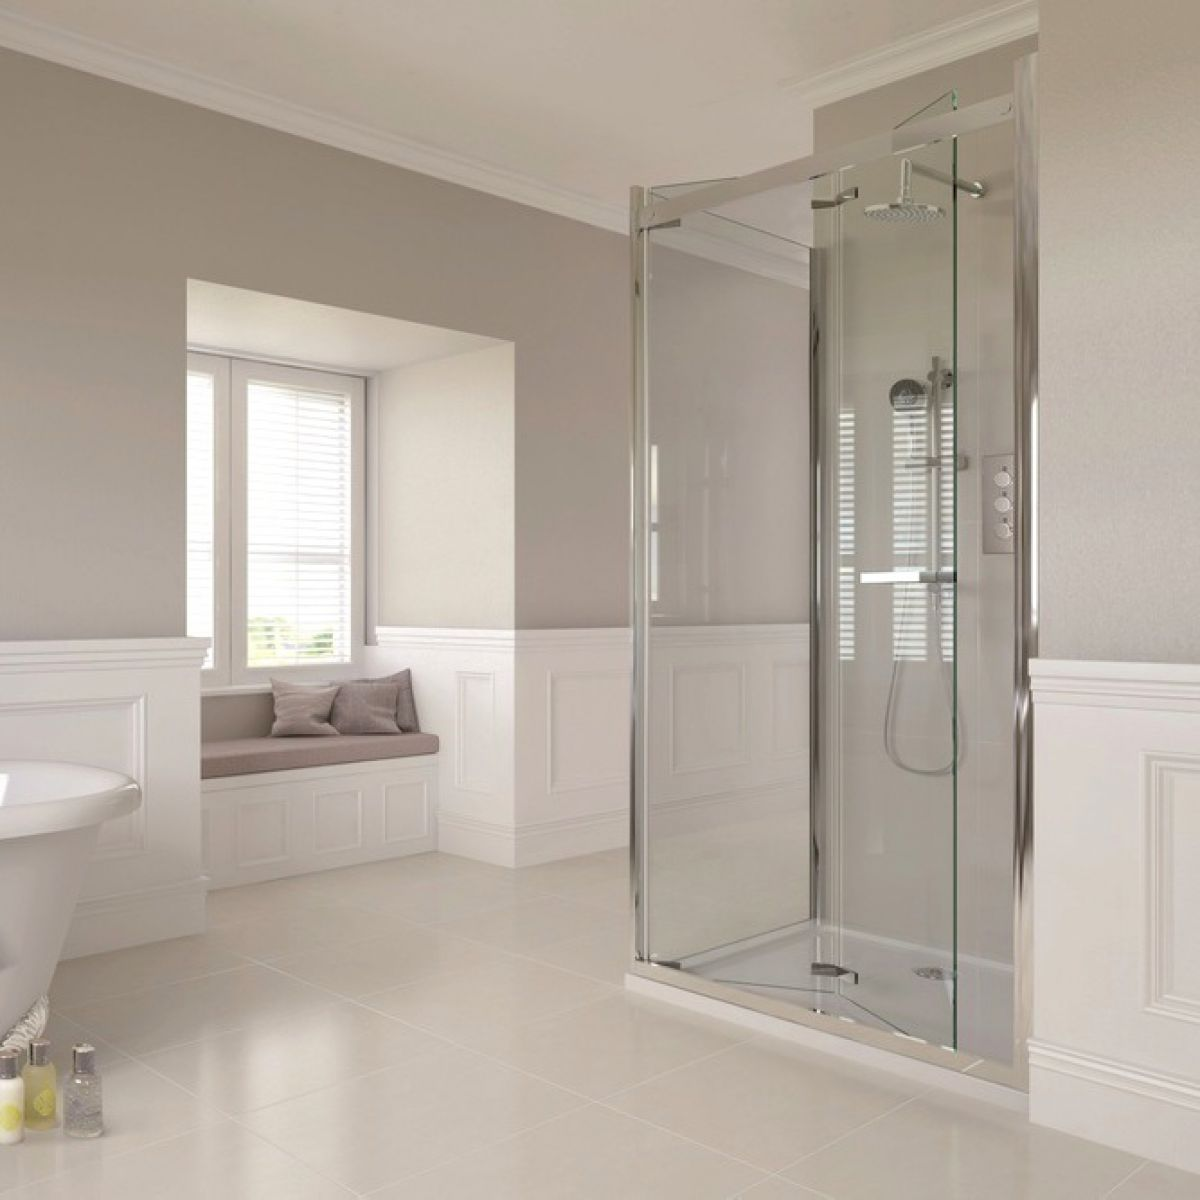 Aqata Spectra Sp481 Bi Fold Shower Enclosure